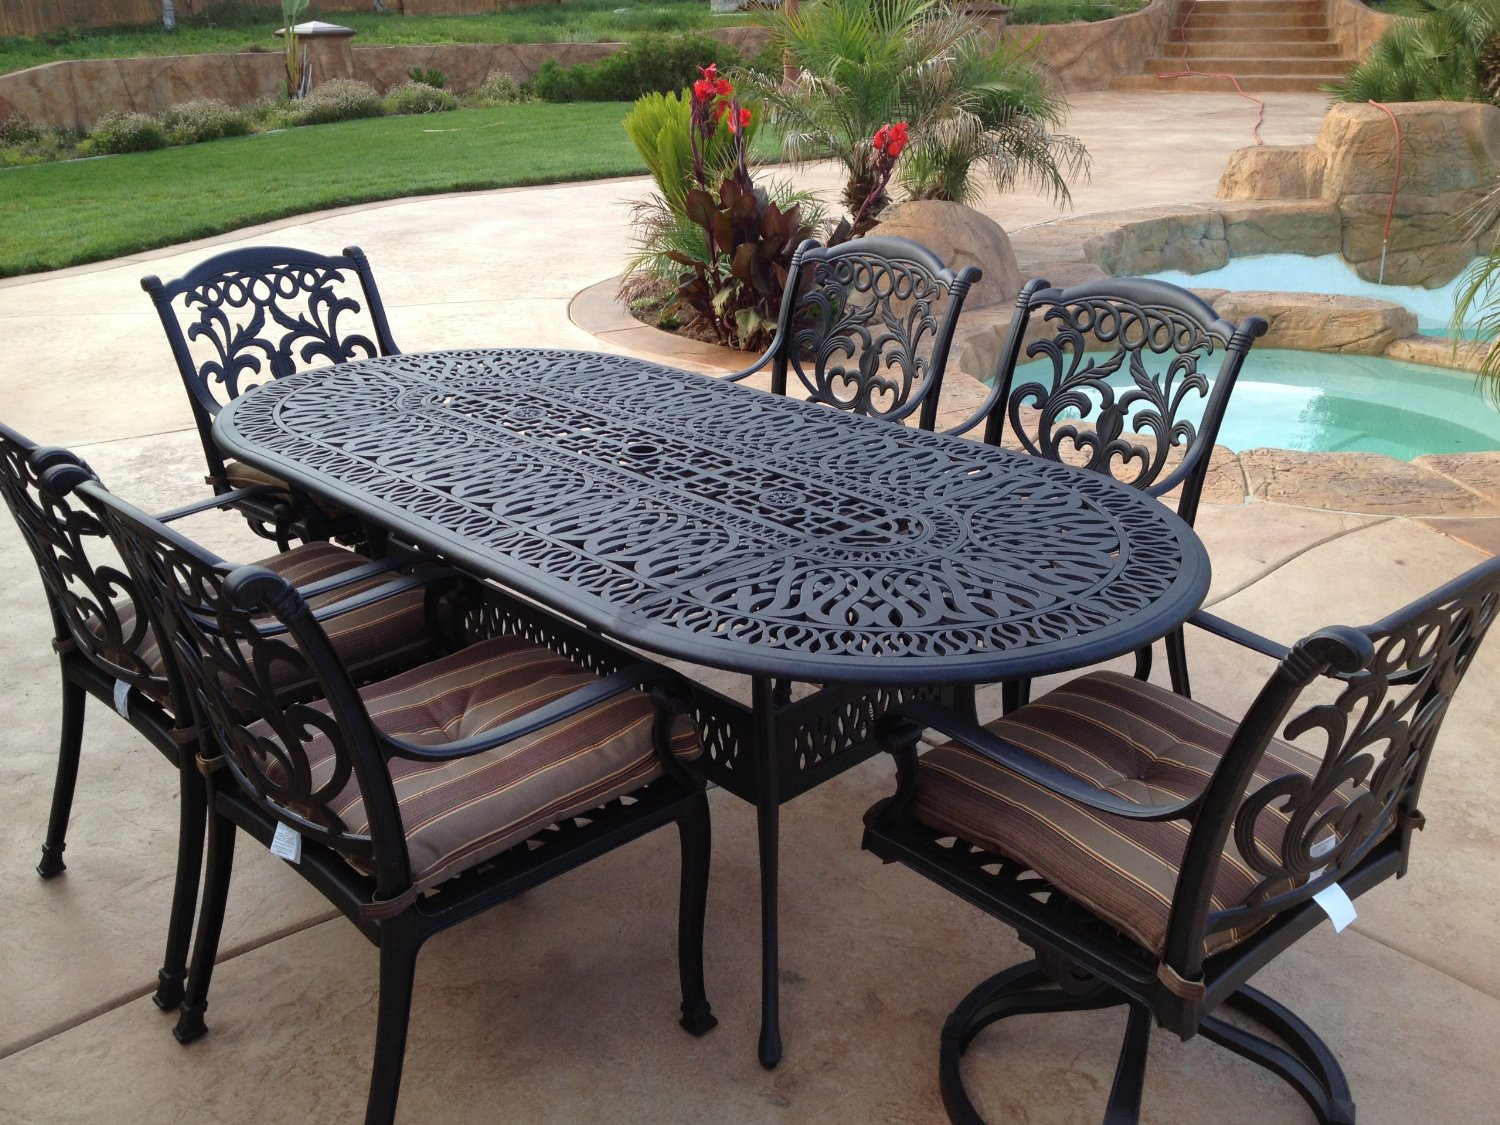 wrought iron outdoor furniture full size of patio & garden: wrought iron outdoor patio furniture AUNTZNP chair